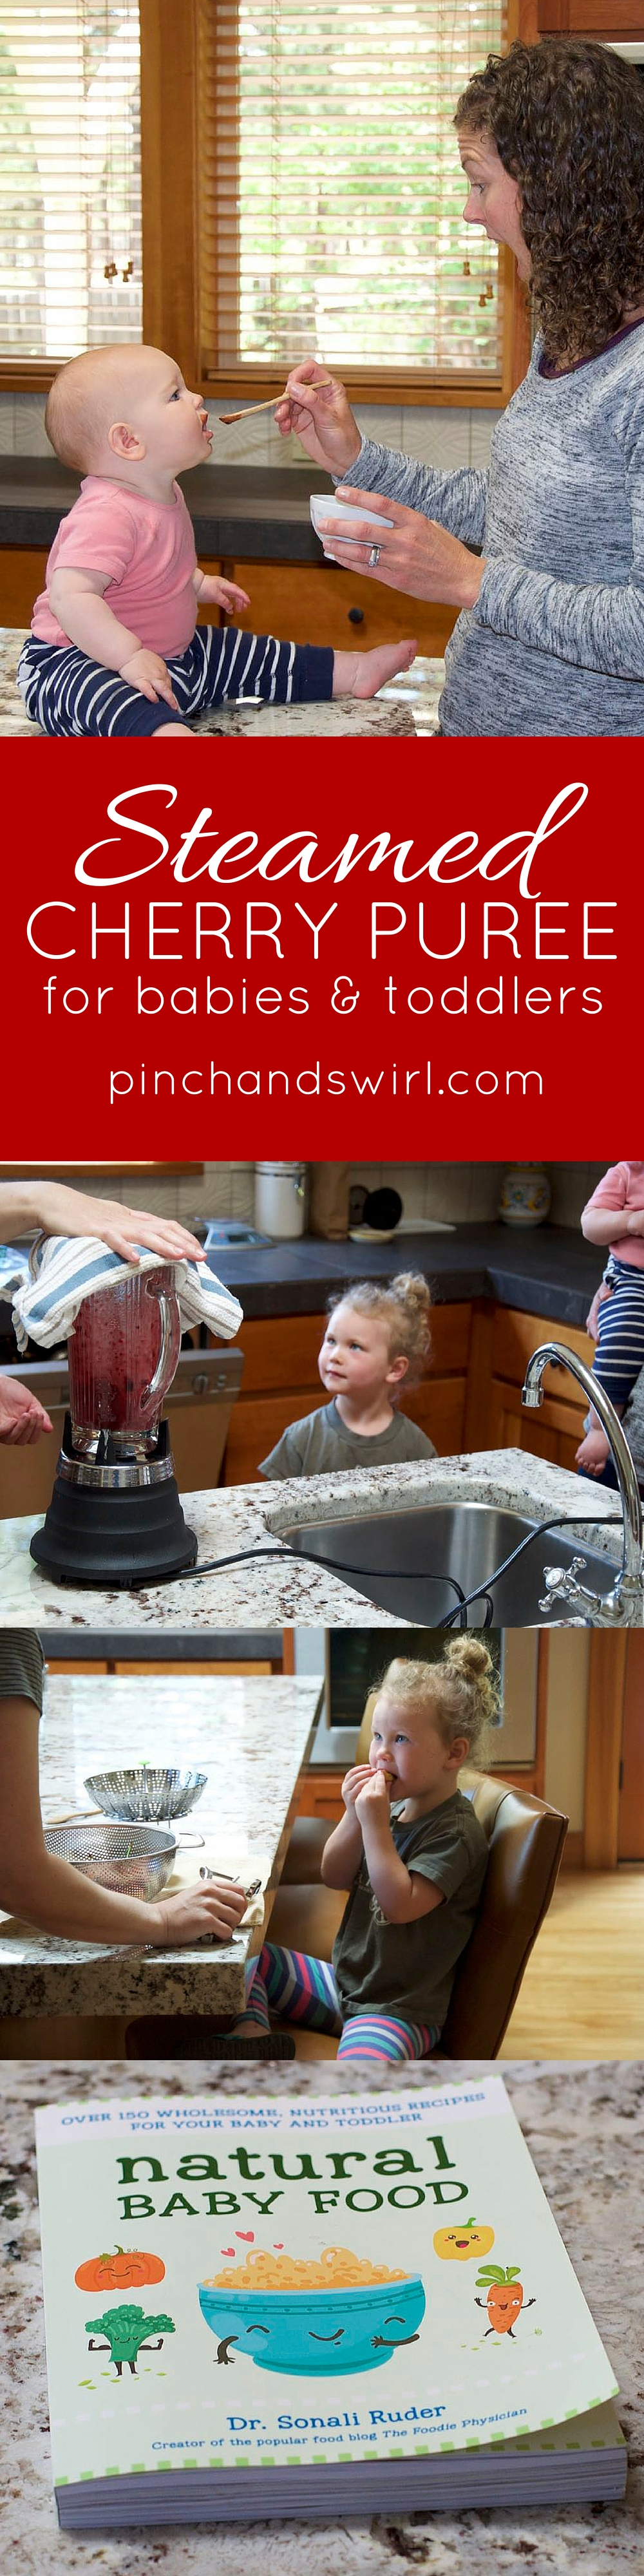 Steamed Cherry Puree for Babies - super easy, absolutely nutritious recipe from the new book : Natural Baby Food by @foodiephysician #babyfood #homemadebabyfood #healthybabyfood #healthyrecipes